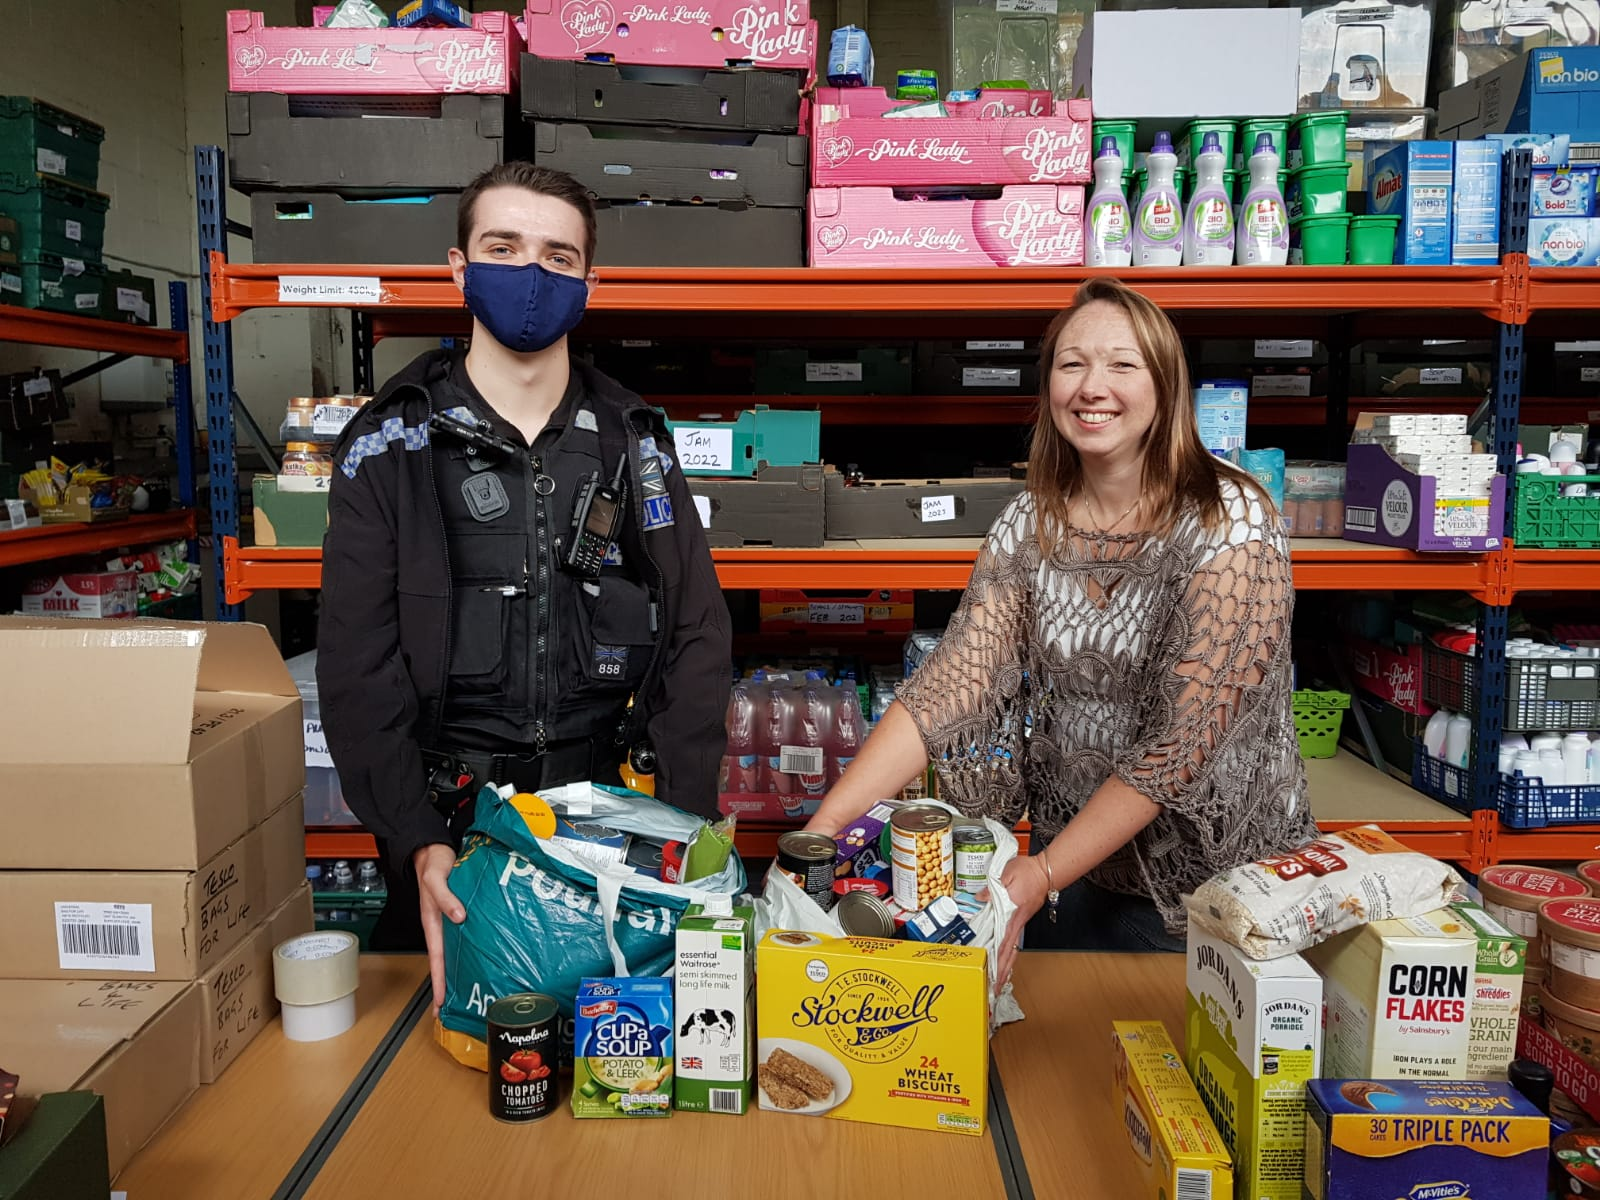 PC Tully and Justine in foodba